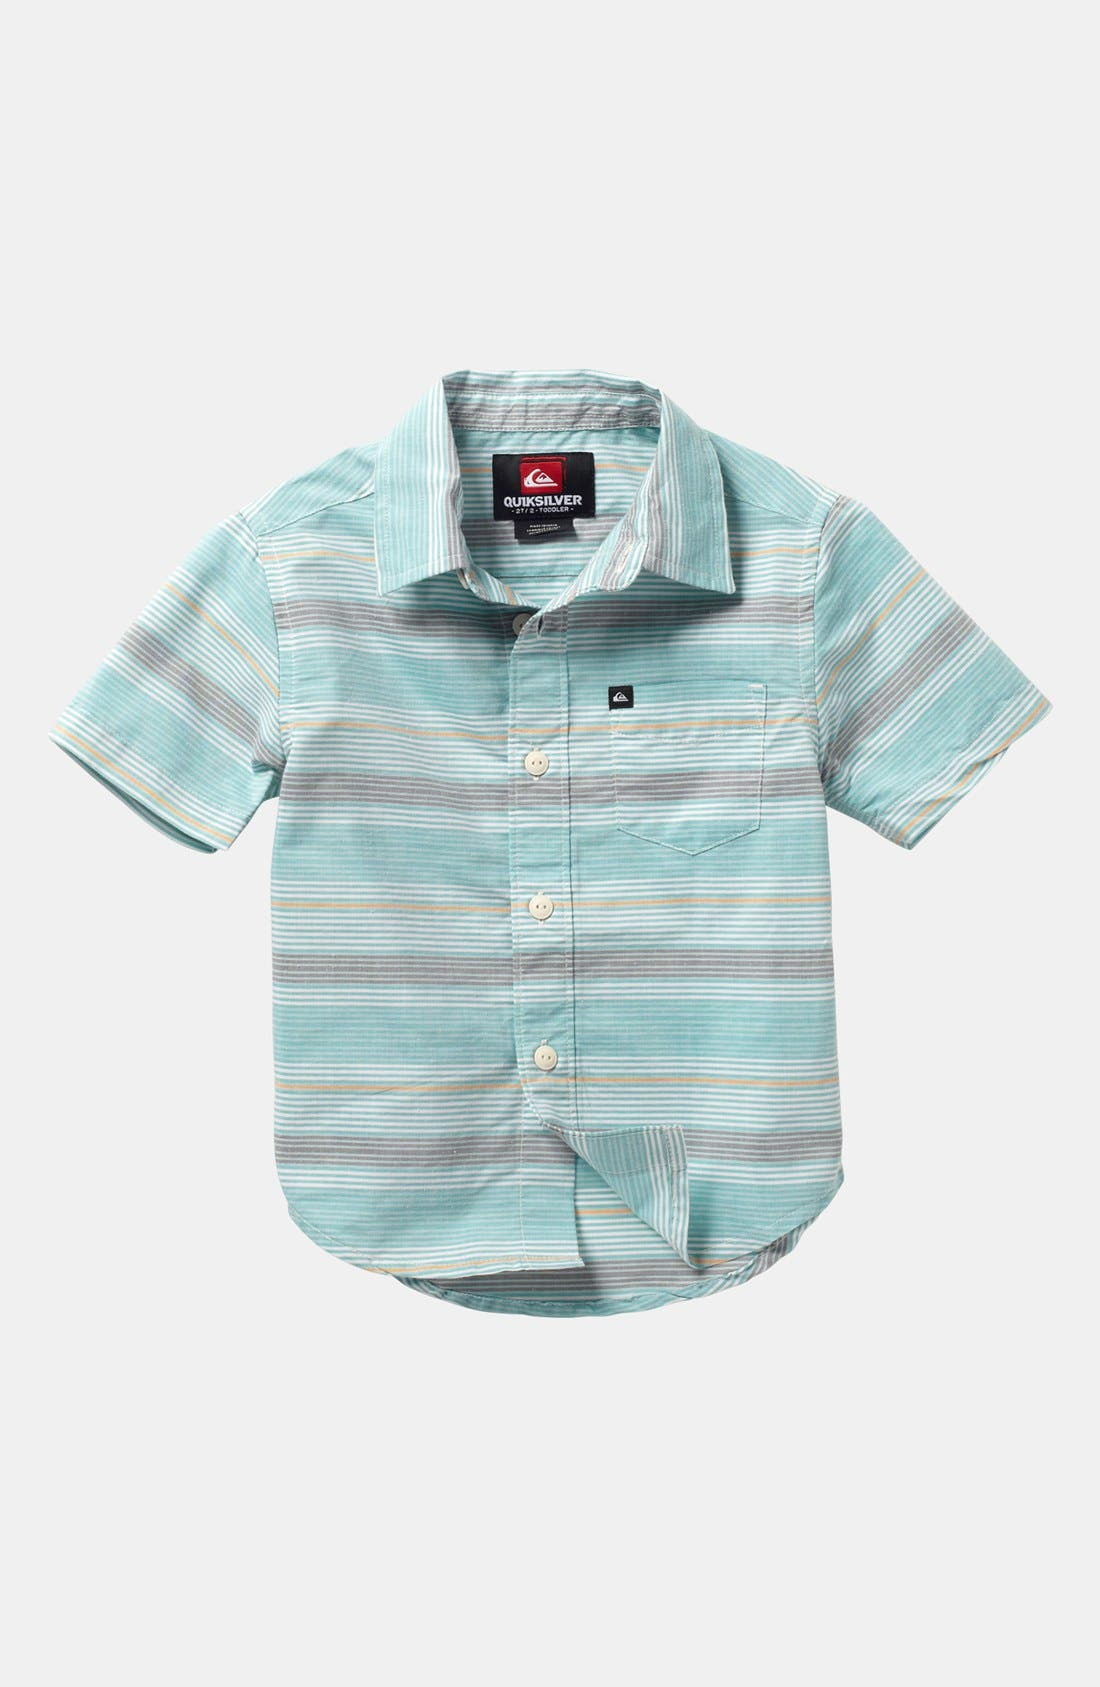 Alternate Image 1 Selected - Quiksilver 'Booked Tickets' Short Sleeve Slim Fit Sport Shirt (Little Boys)